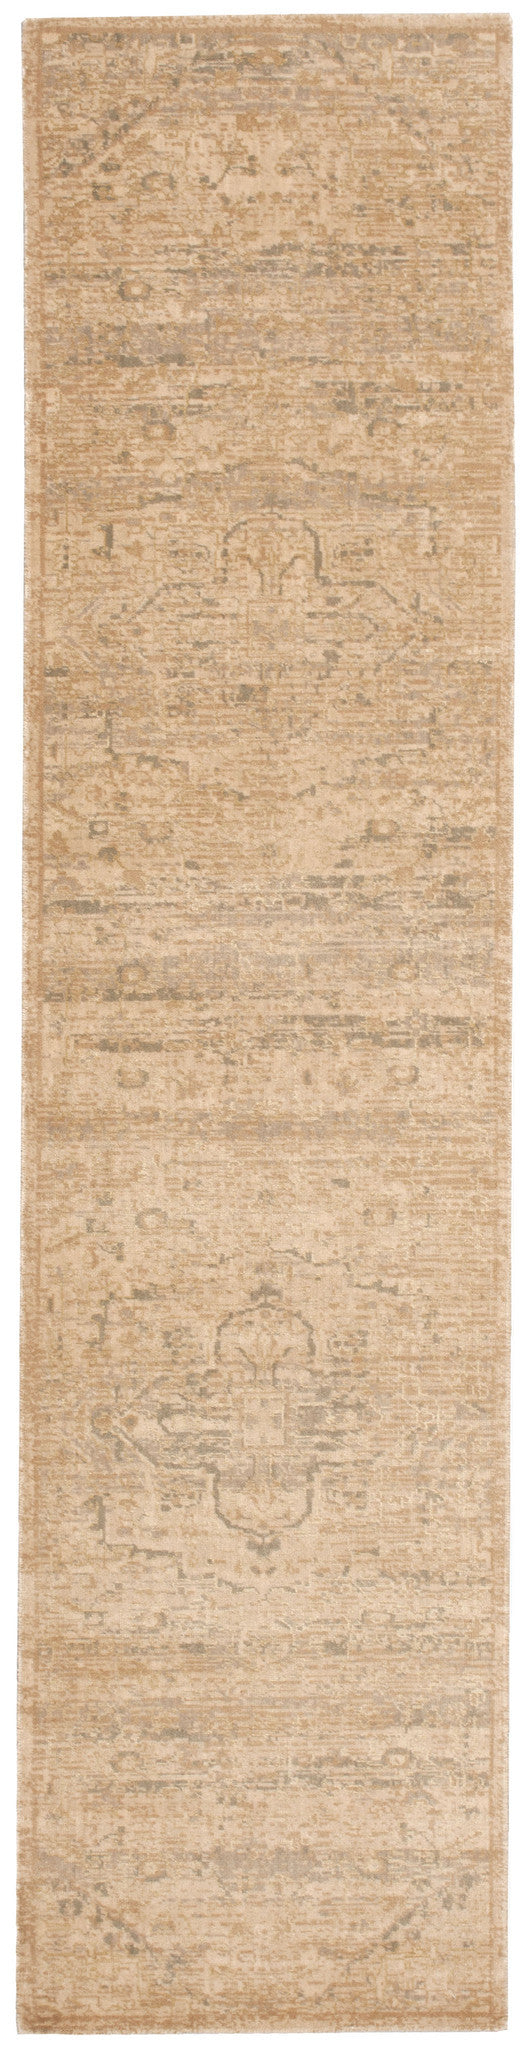 Nourison Silk Elements Sand Area Rug SKE14 SAN